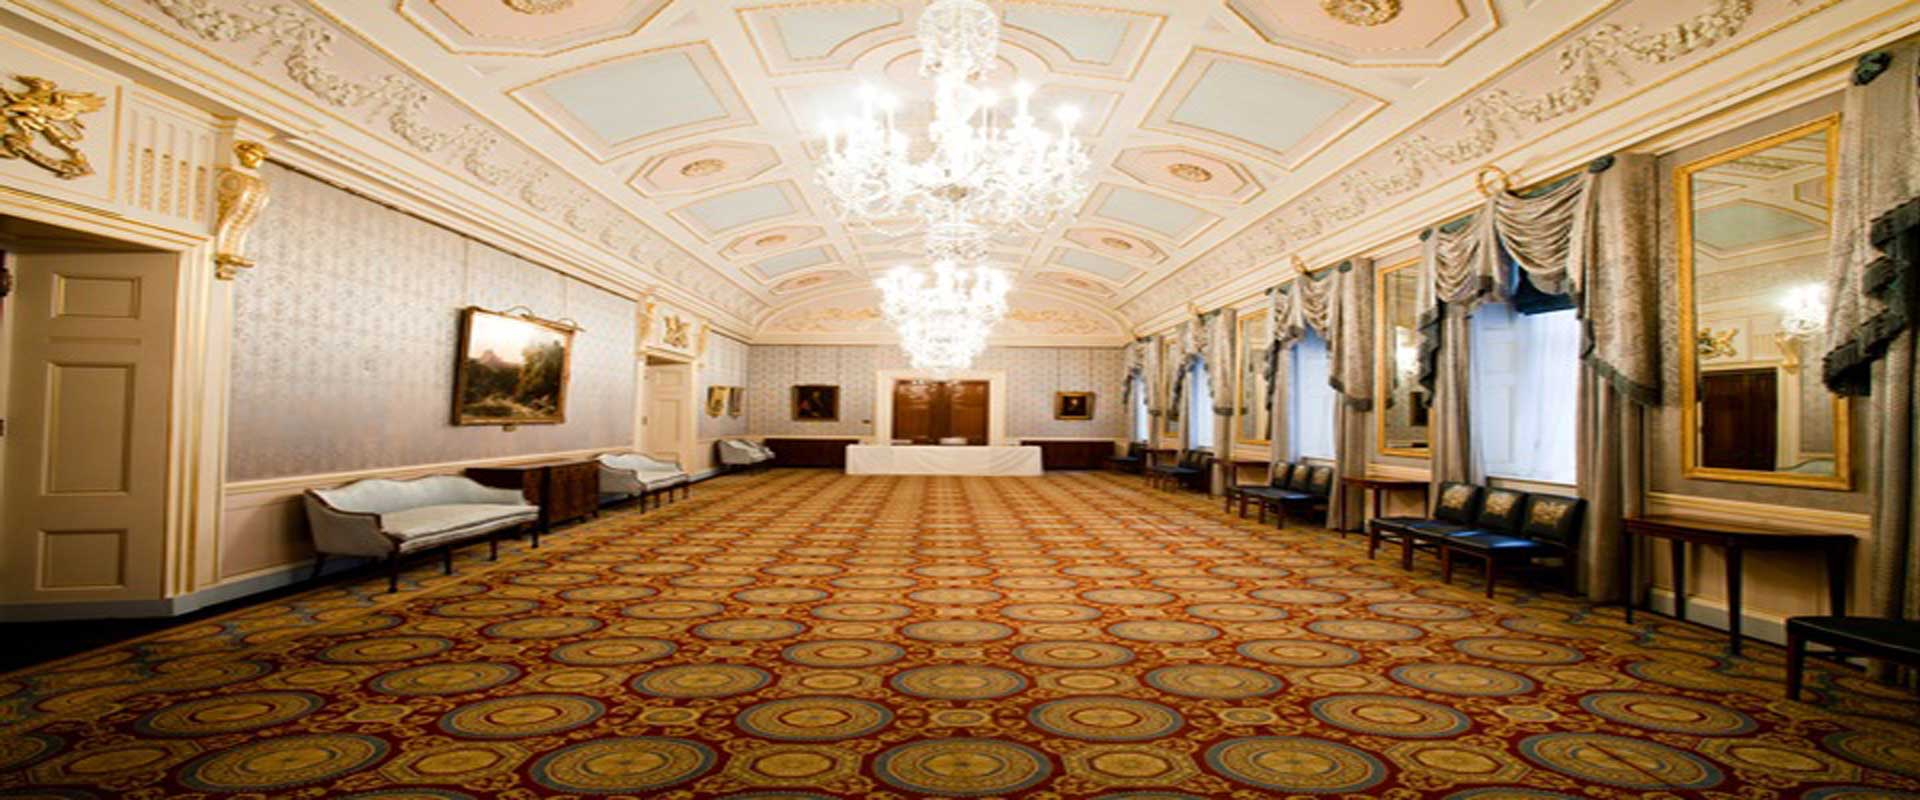 Clothworkers-Hall-large-reception-room